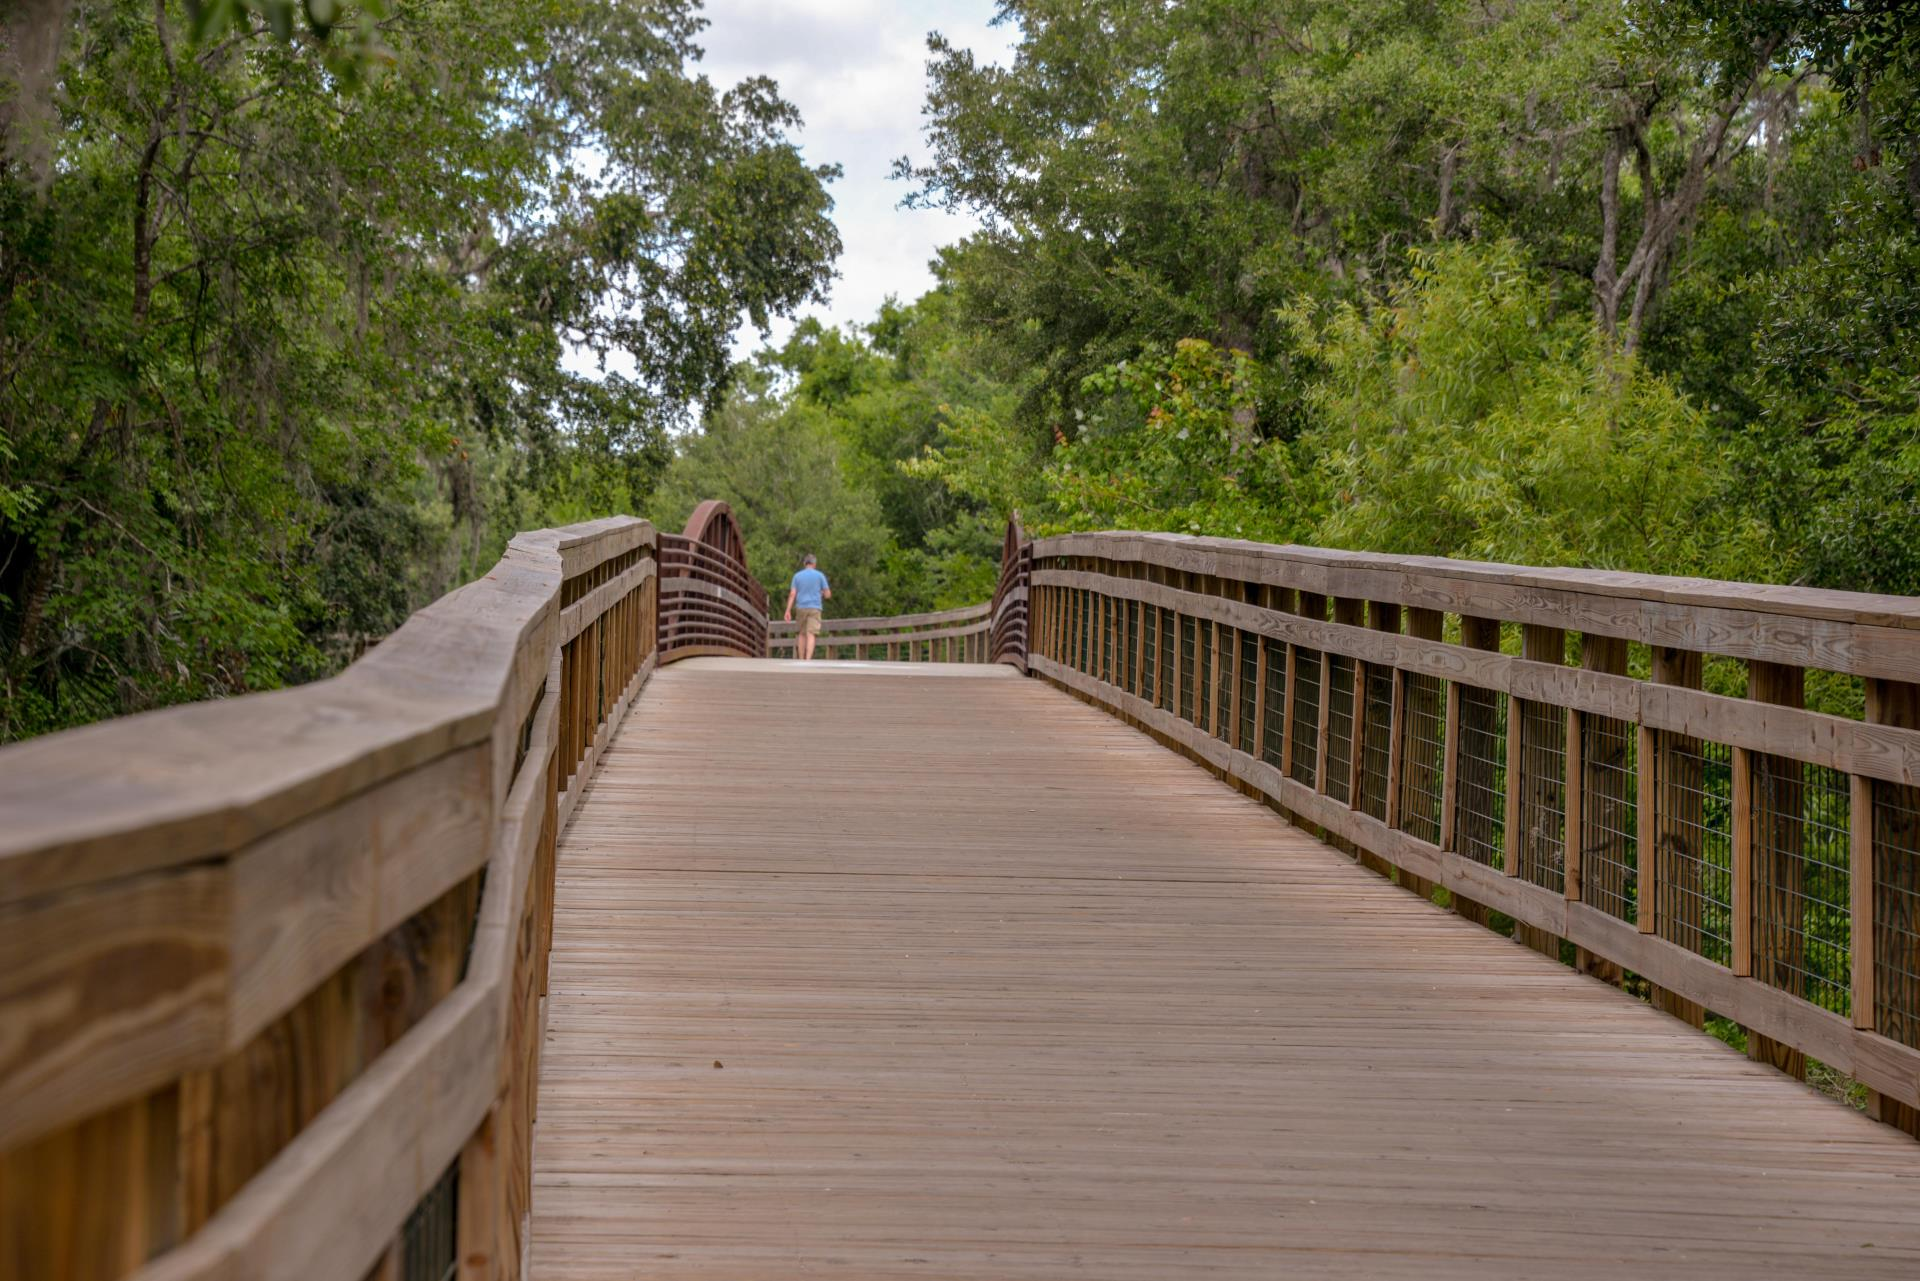 Shingle Creek Regional Trail with man crossing bridge